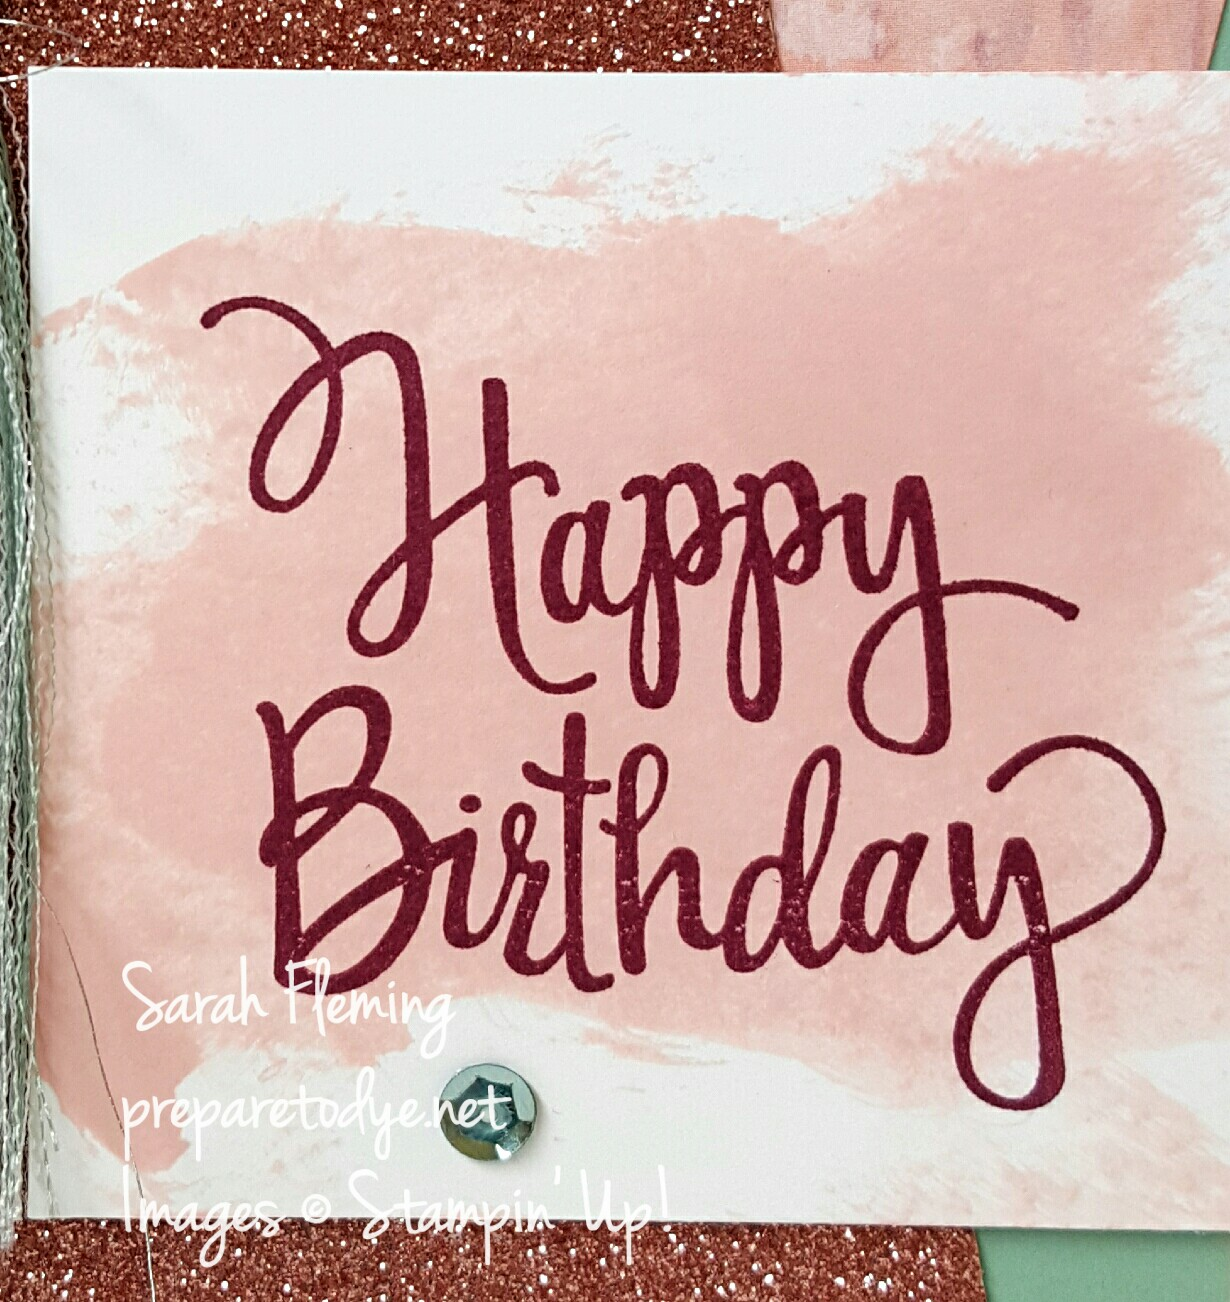 Stampin' Up! Stylized Birthday featuring Mint Macaron Mini Striped Ribbon - quick and easy handmade card - Sarah Fleming - Prepare to Dye Papercrafts